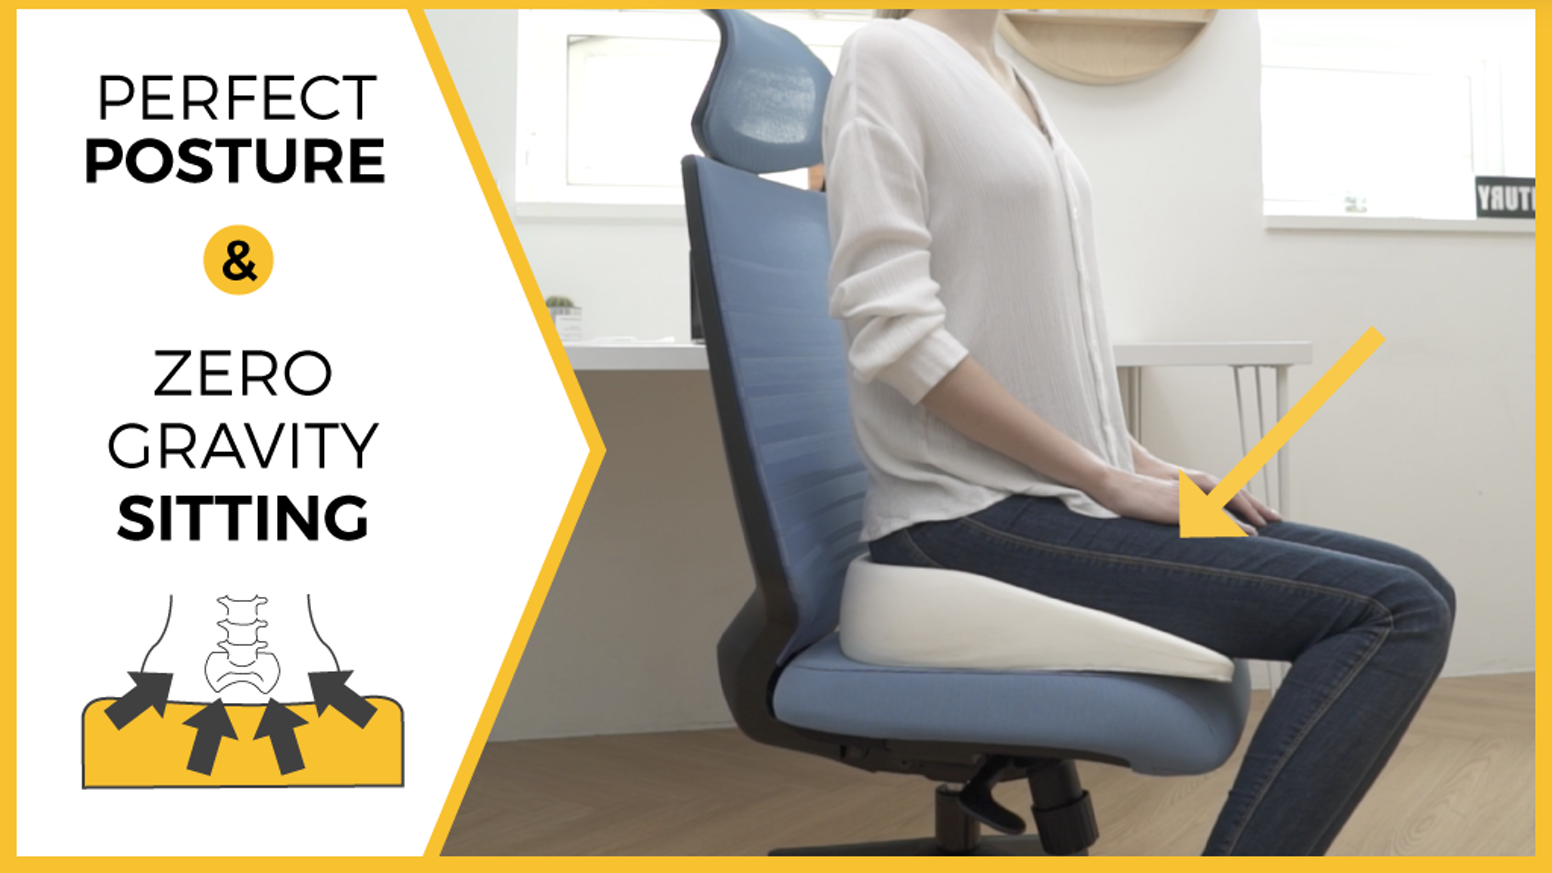 Experience weightless sitting with the most ergonomic cushion EVER. Reduce fatigue, release stress & pain, & Improves your mood.